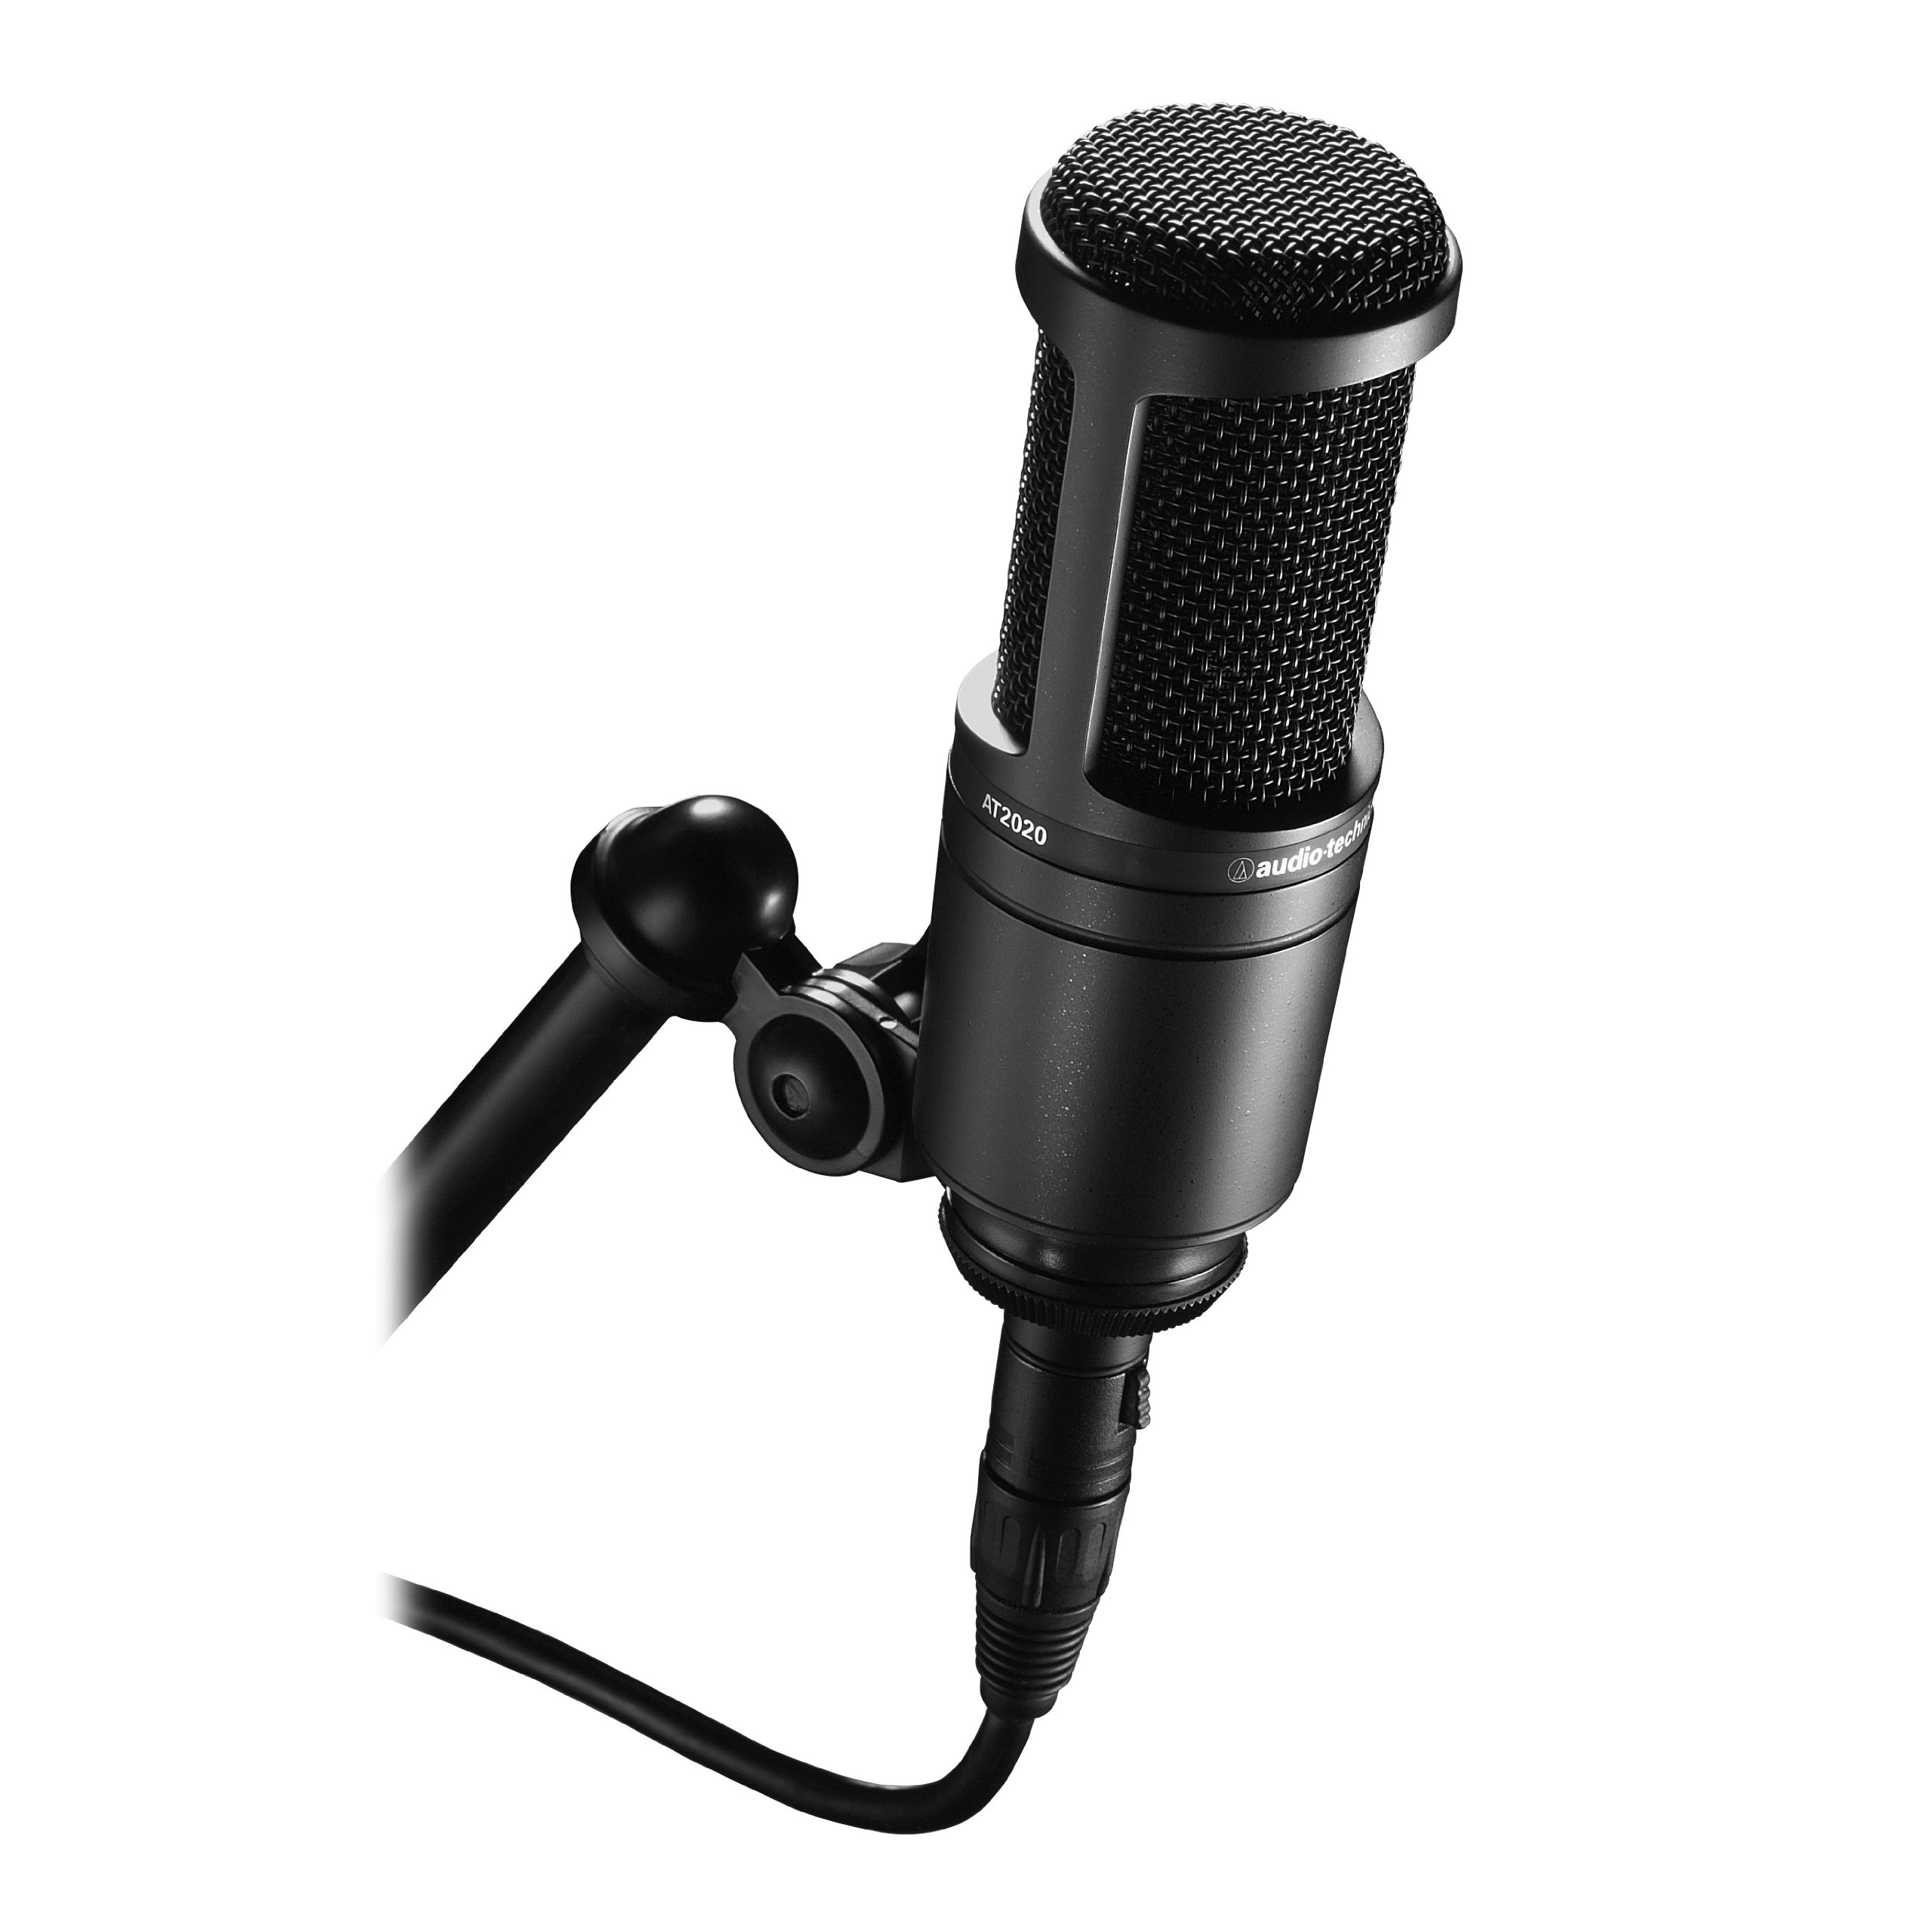 Audio-Technica AT2020 Cardioid Condenser Studio XLR Microphone, Black